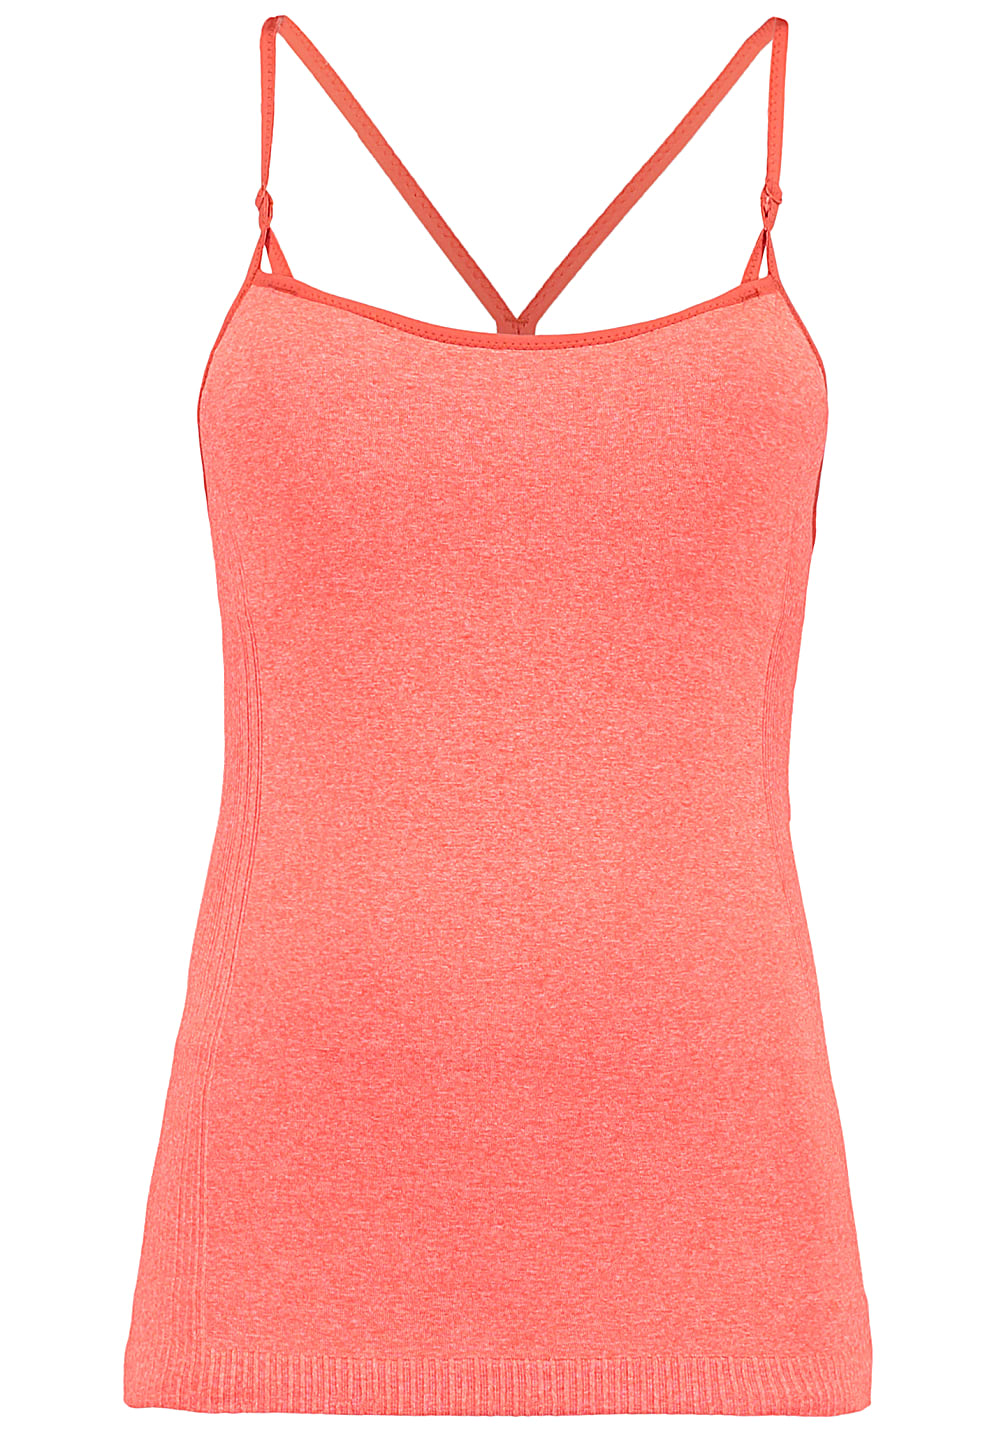 O´Neill Active Seamless - Funktionsunterwäsche für Damen Orange Sale Angebote Welzow